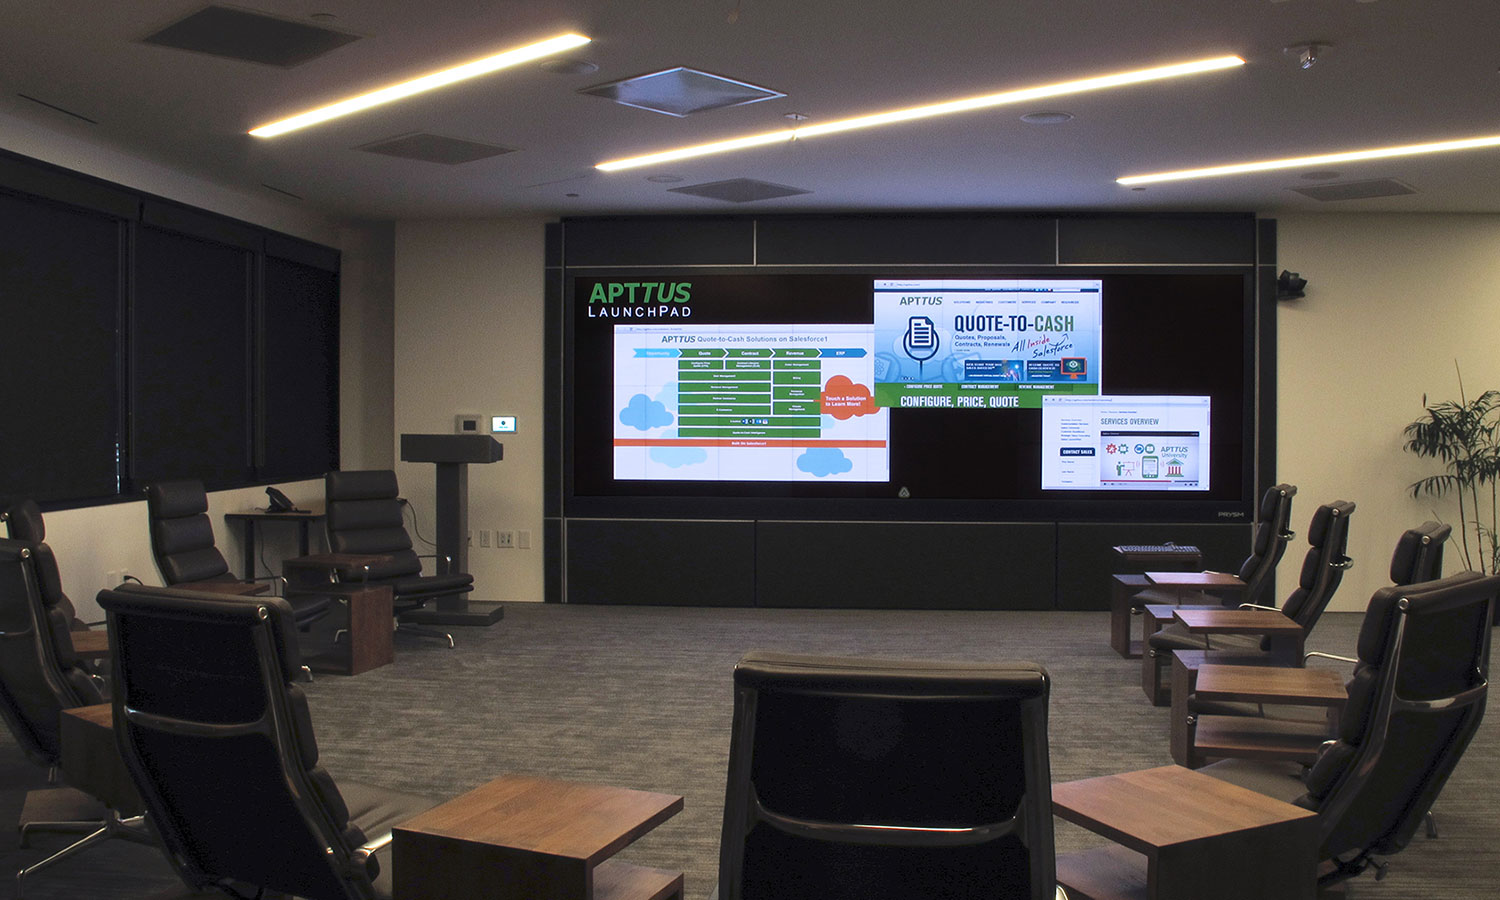 prysm-visual-workplace-solution-at-apttus.jpg